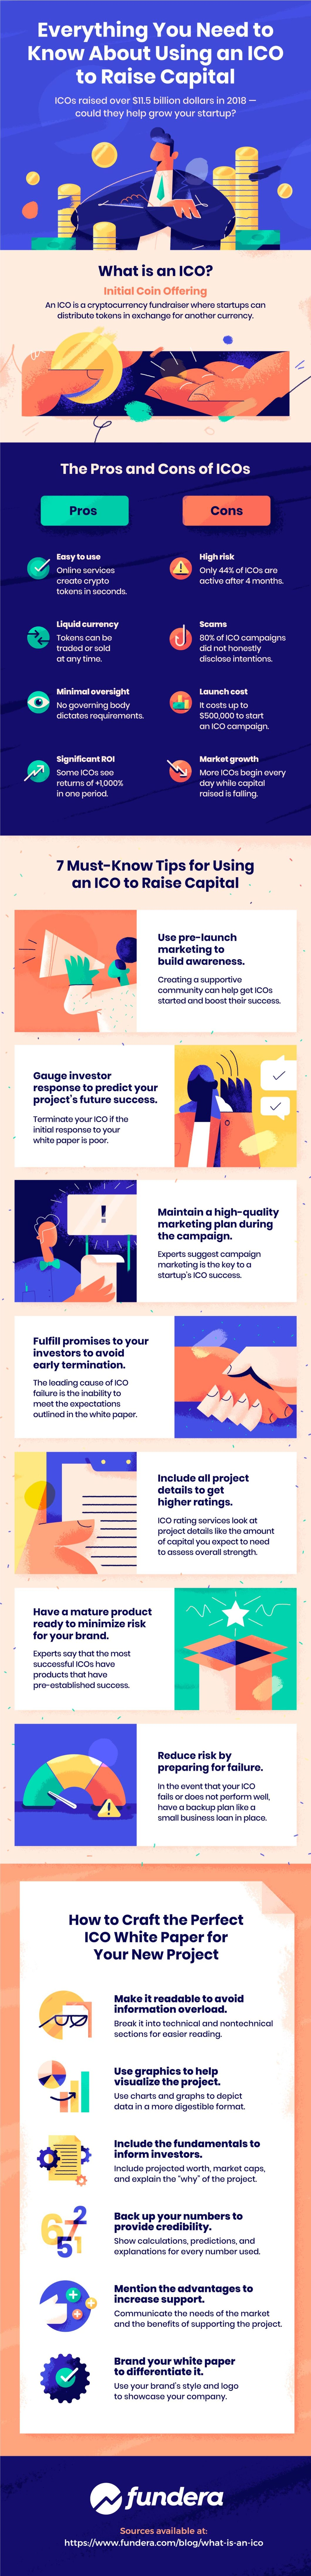 How to Use the ICO Route to Raise Capital for Your Start-Up - Infographic